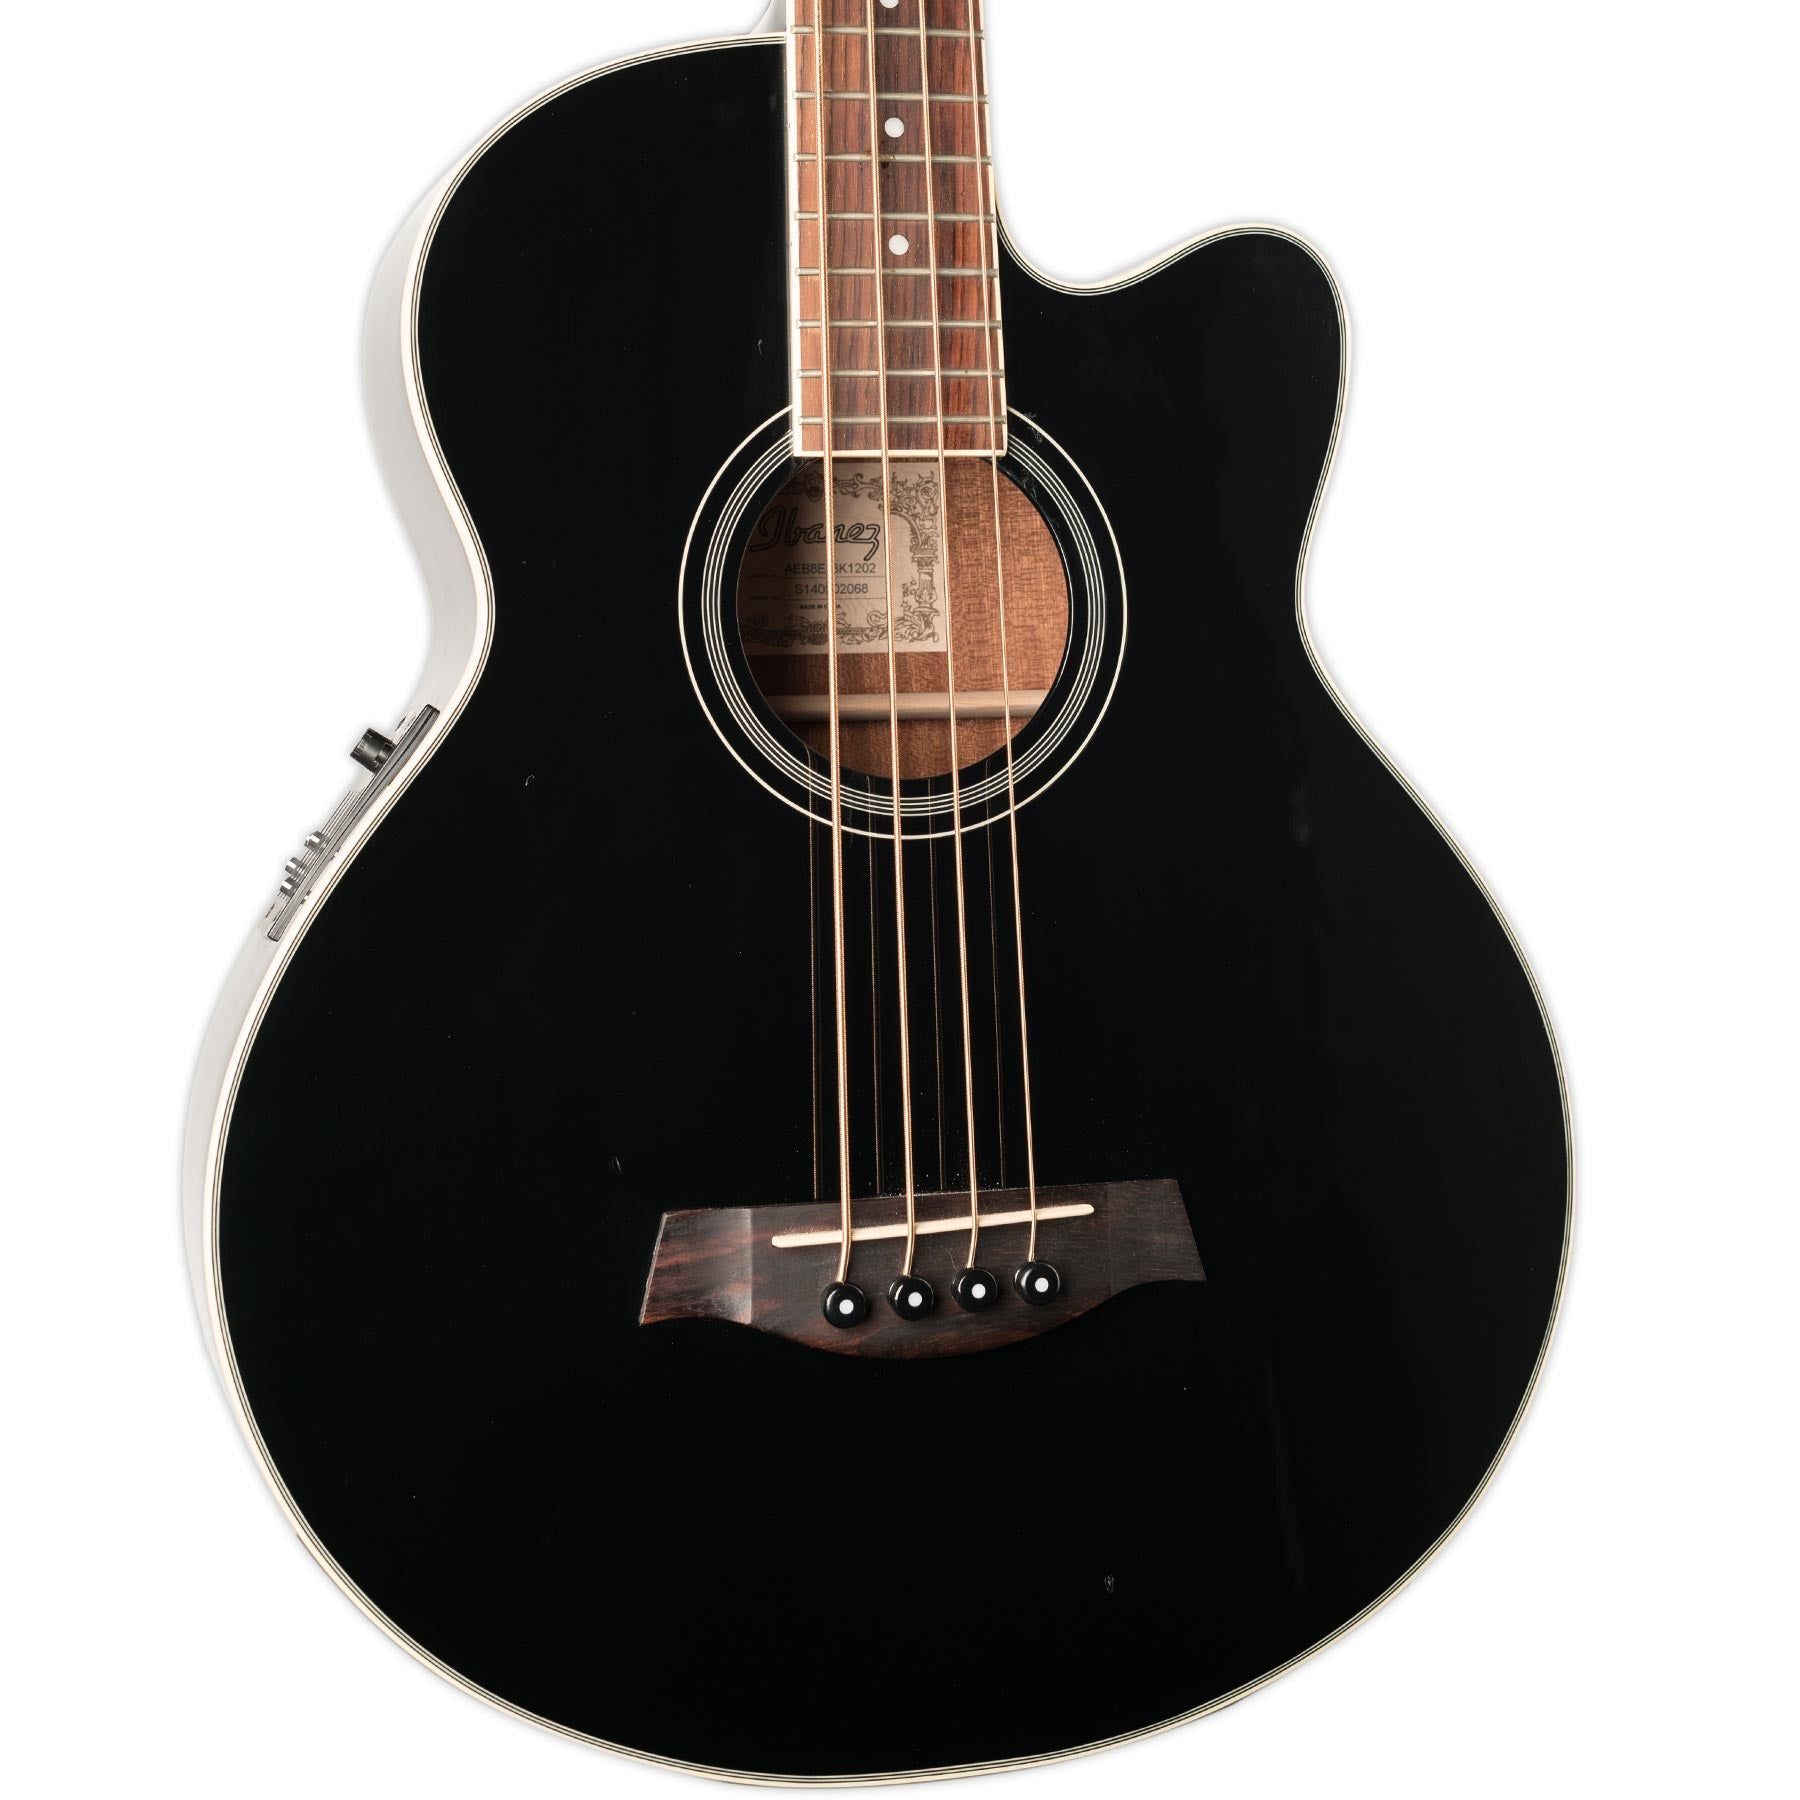 Used Ibanez Abe8e Bk1202 Acoustic Bass W Pickup And Case Stang Guitars On An Electric Guitar Or